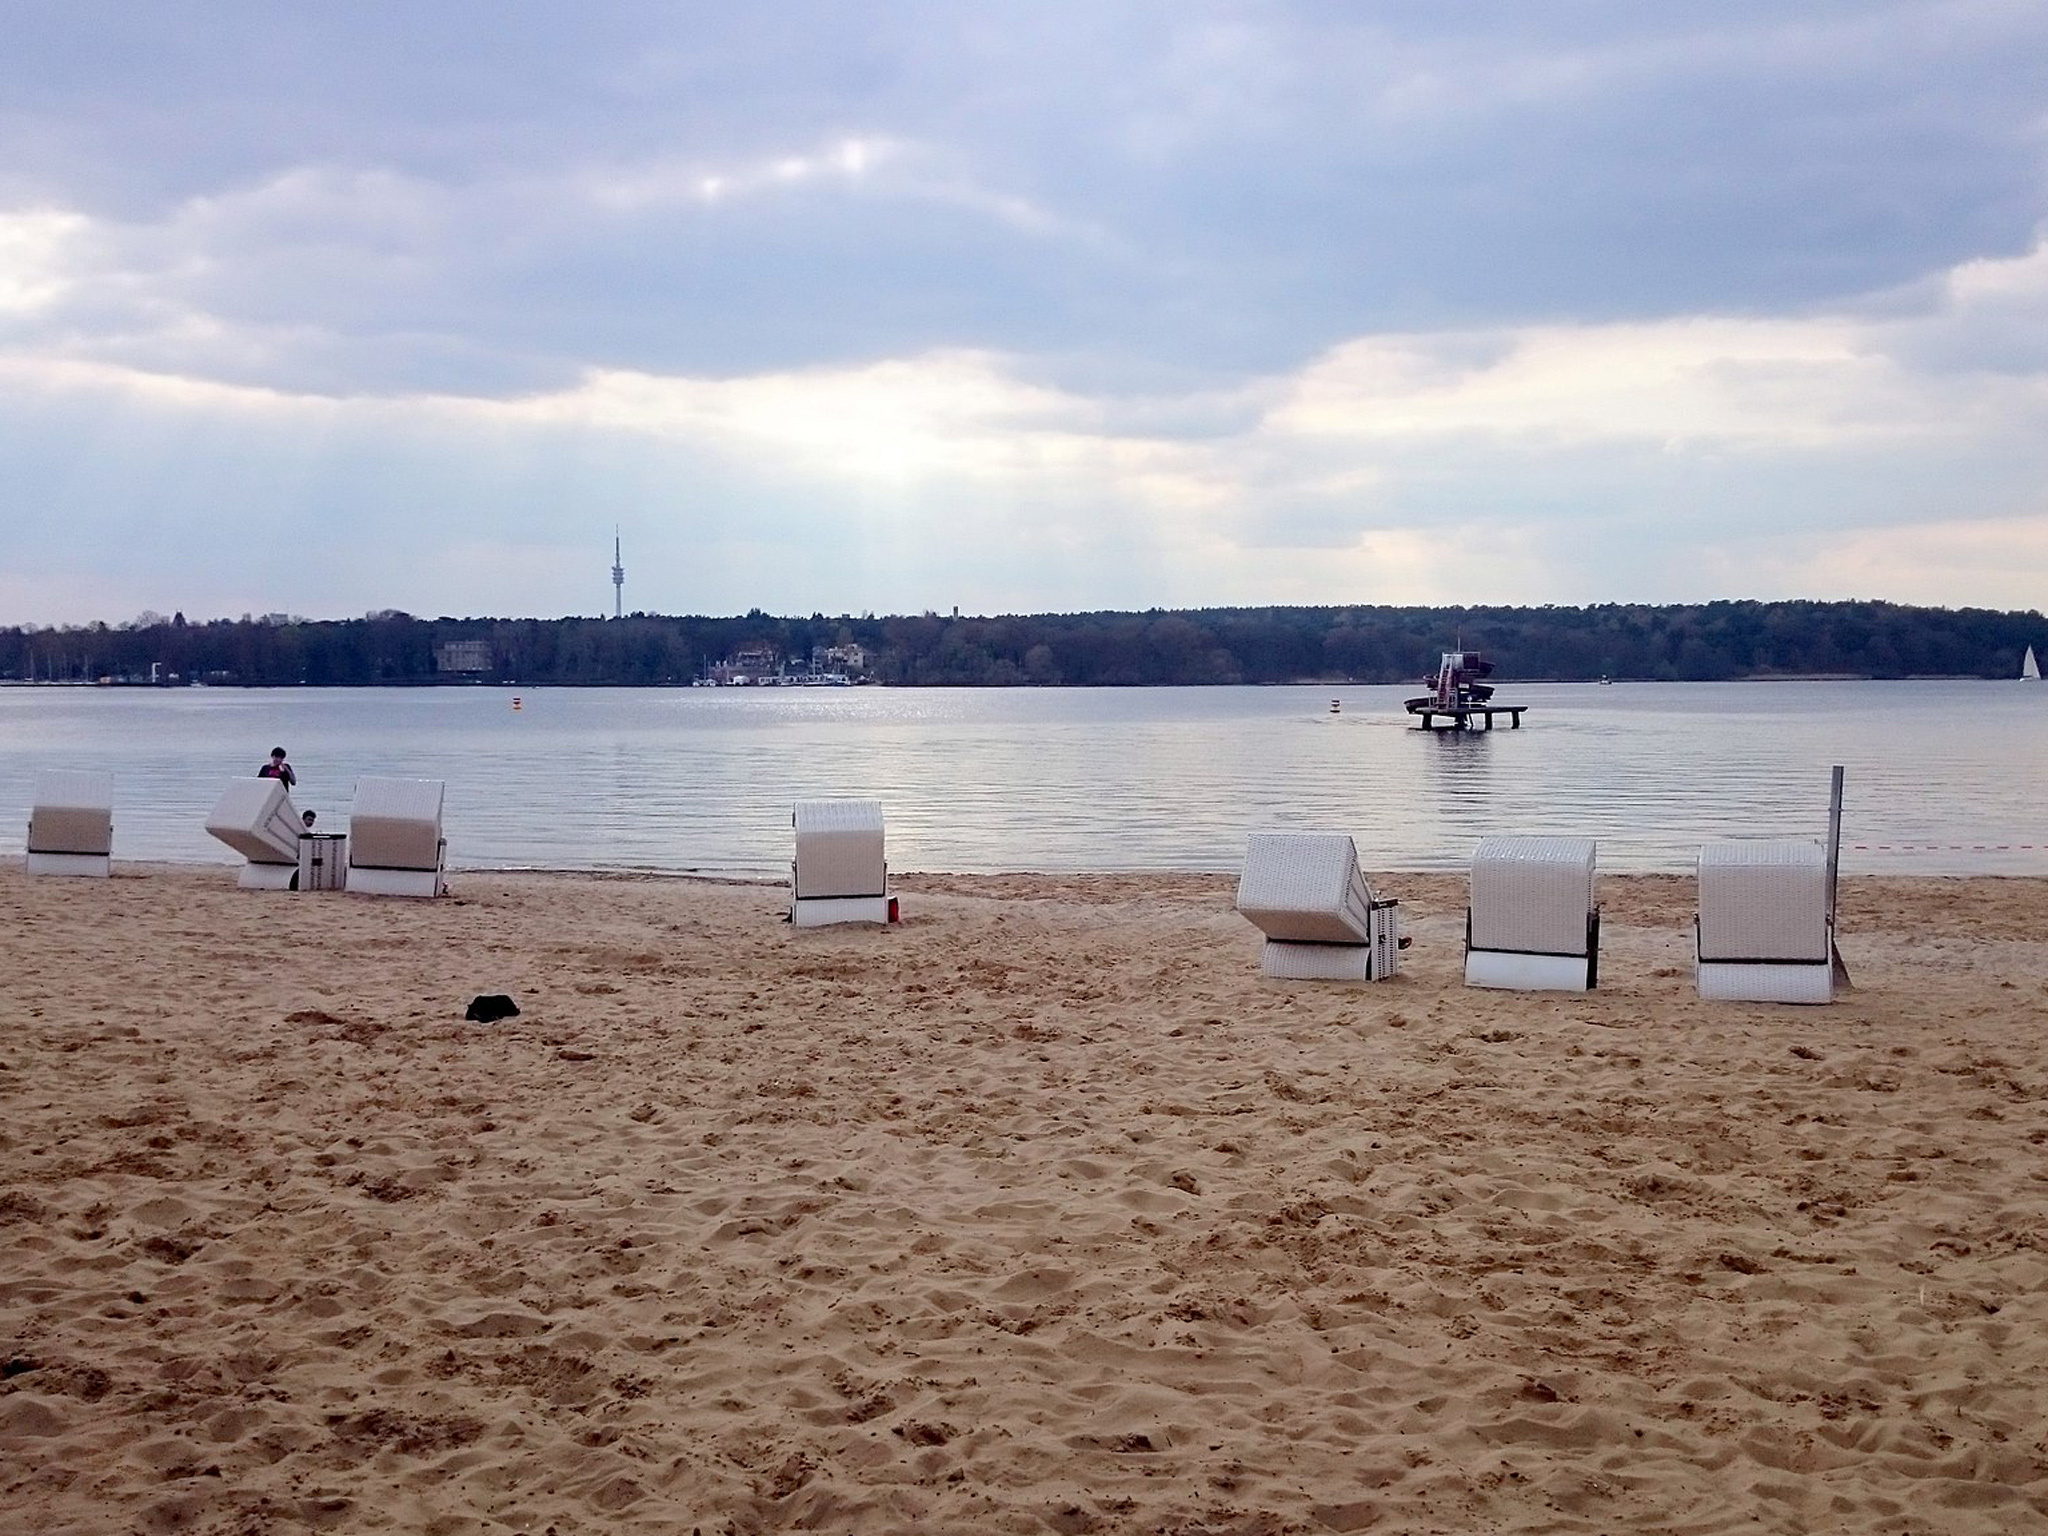 On the beach at Strandbad Wannsee in Berlin